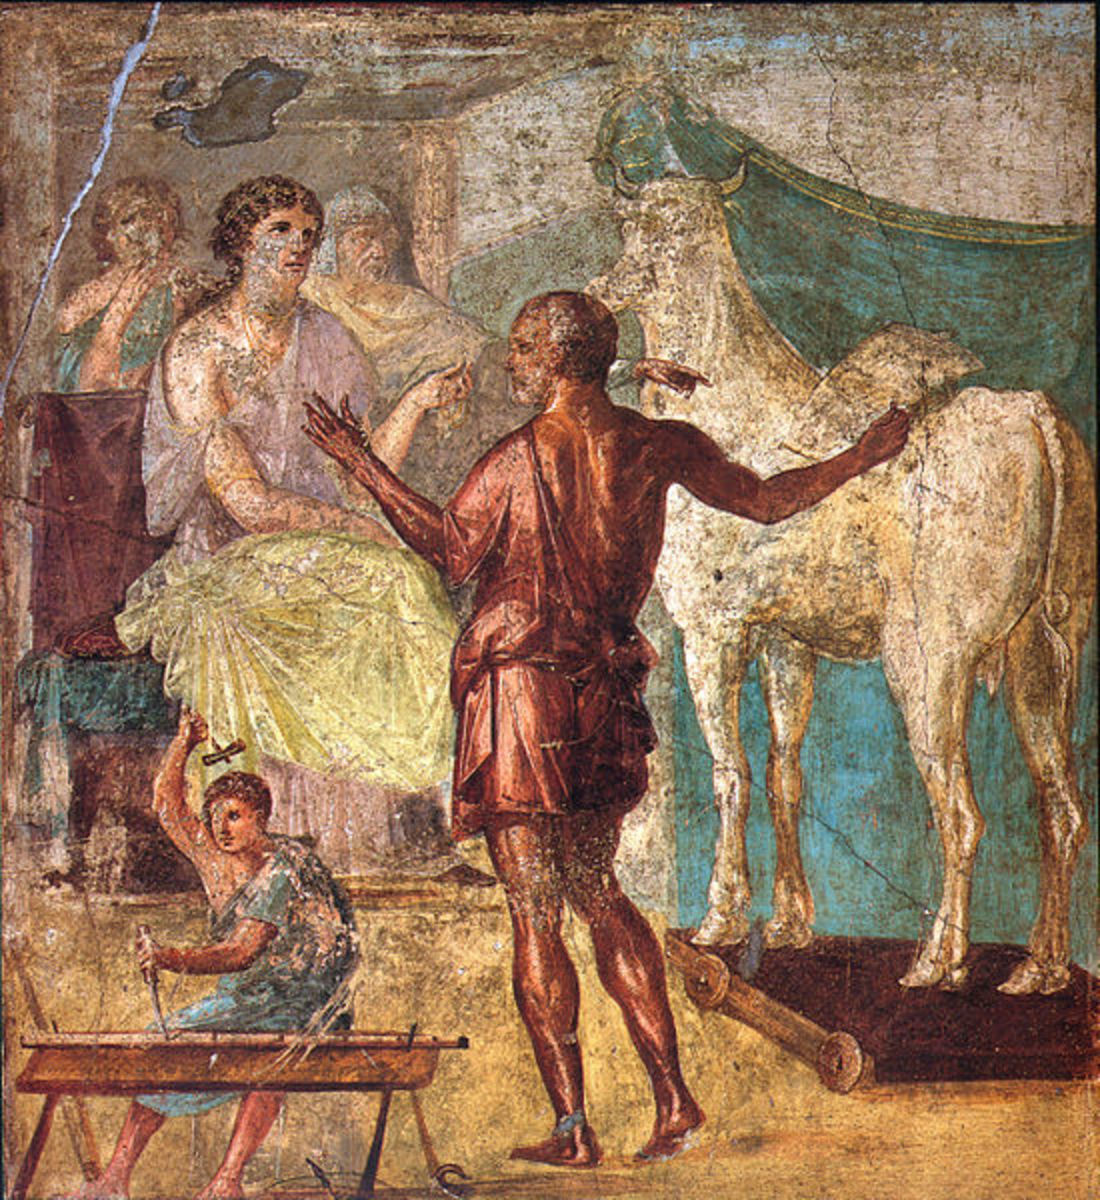 Daedalus, Pasiphae and wooden cow. Roman fresco from the northern wall of the triclinium in the Casa dei Vettii (VI 15,1) in Pompeii. PD-Old